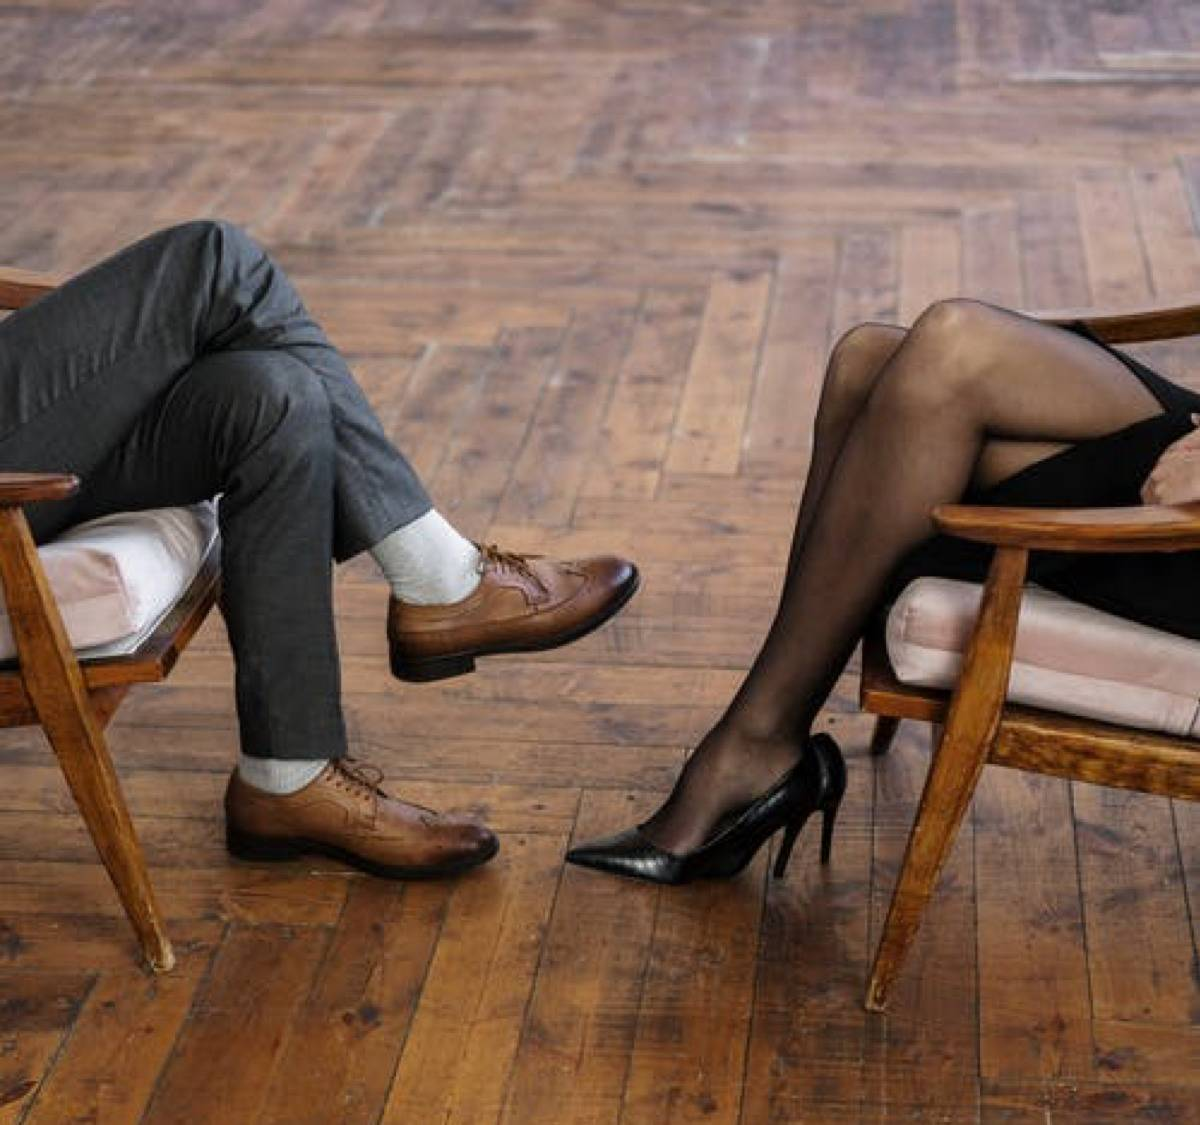 man and woman's feet seen as they sit in chairs facing each other